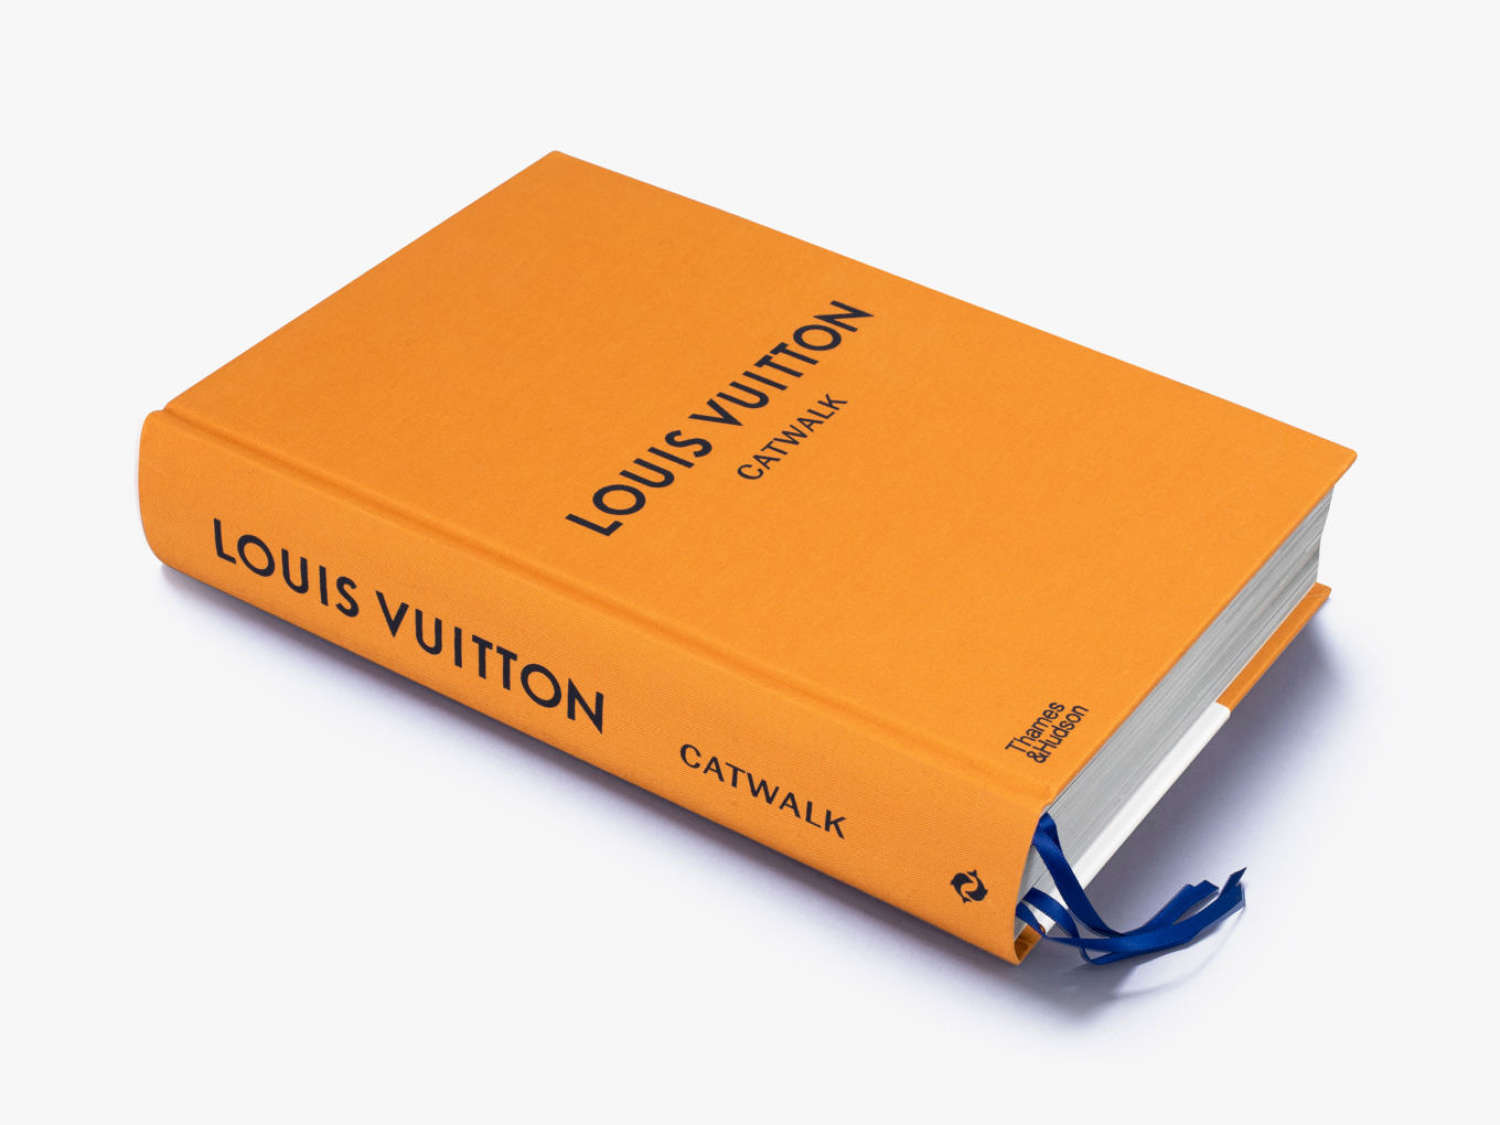 Designer Coffee Table Book - Louis Vuitton